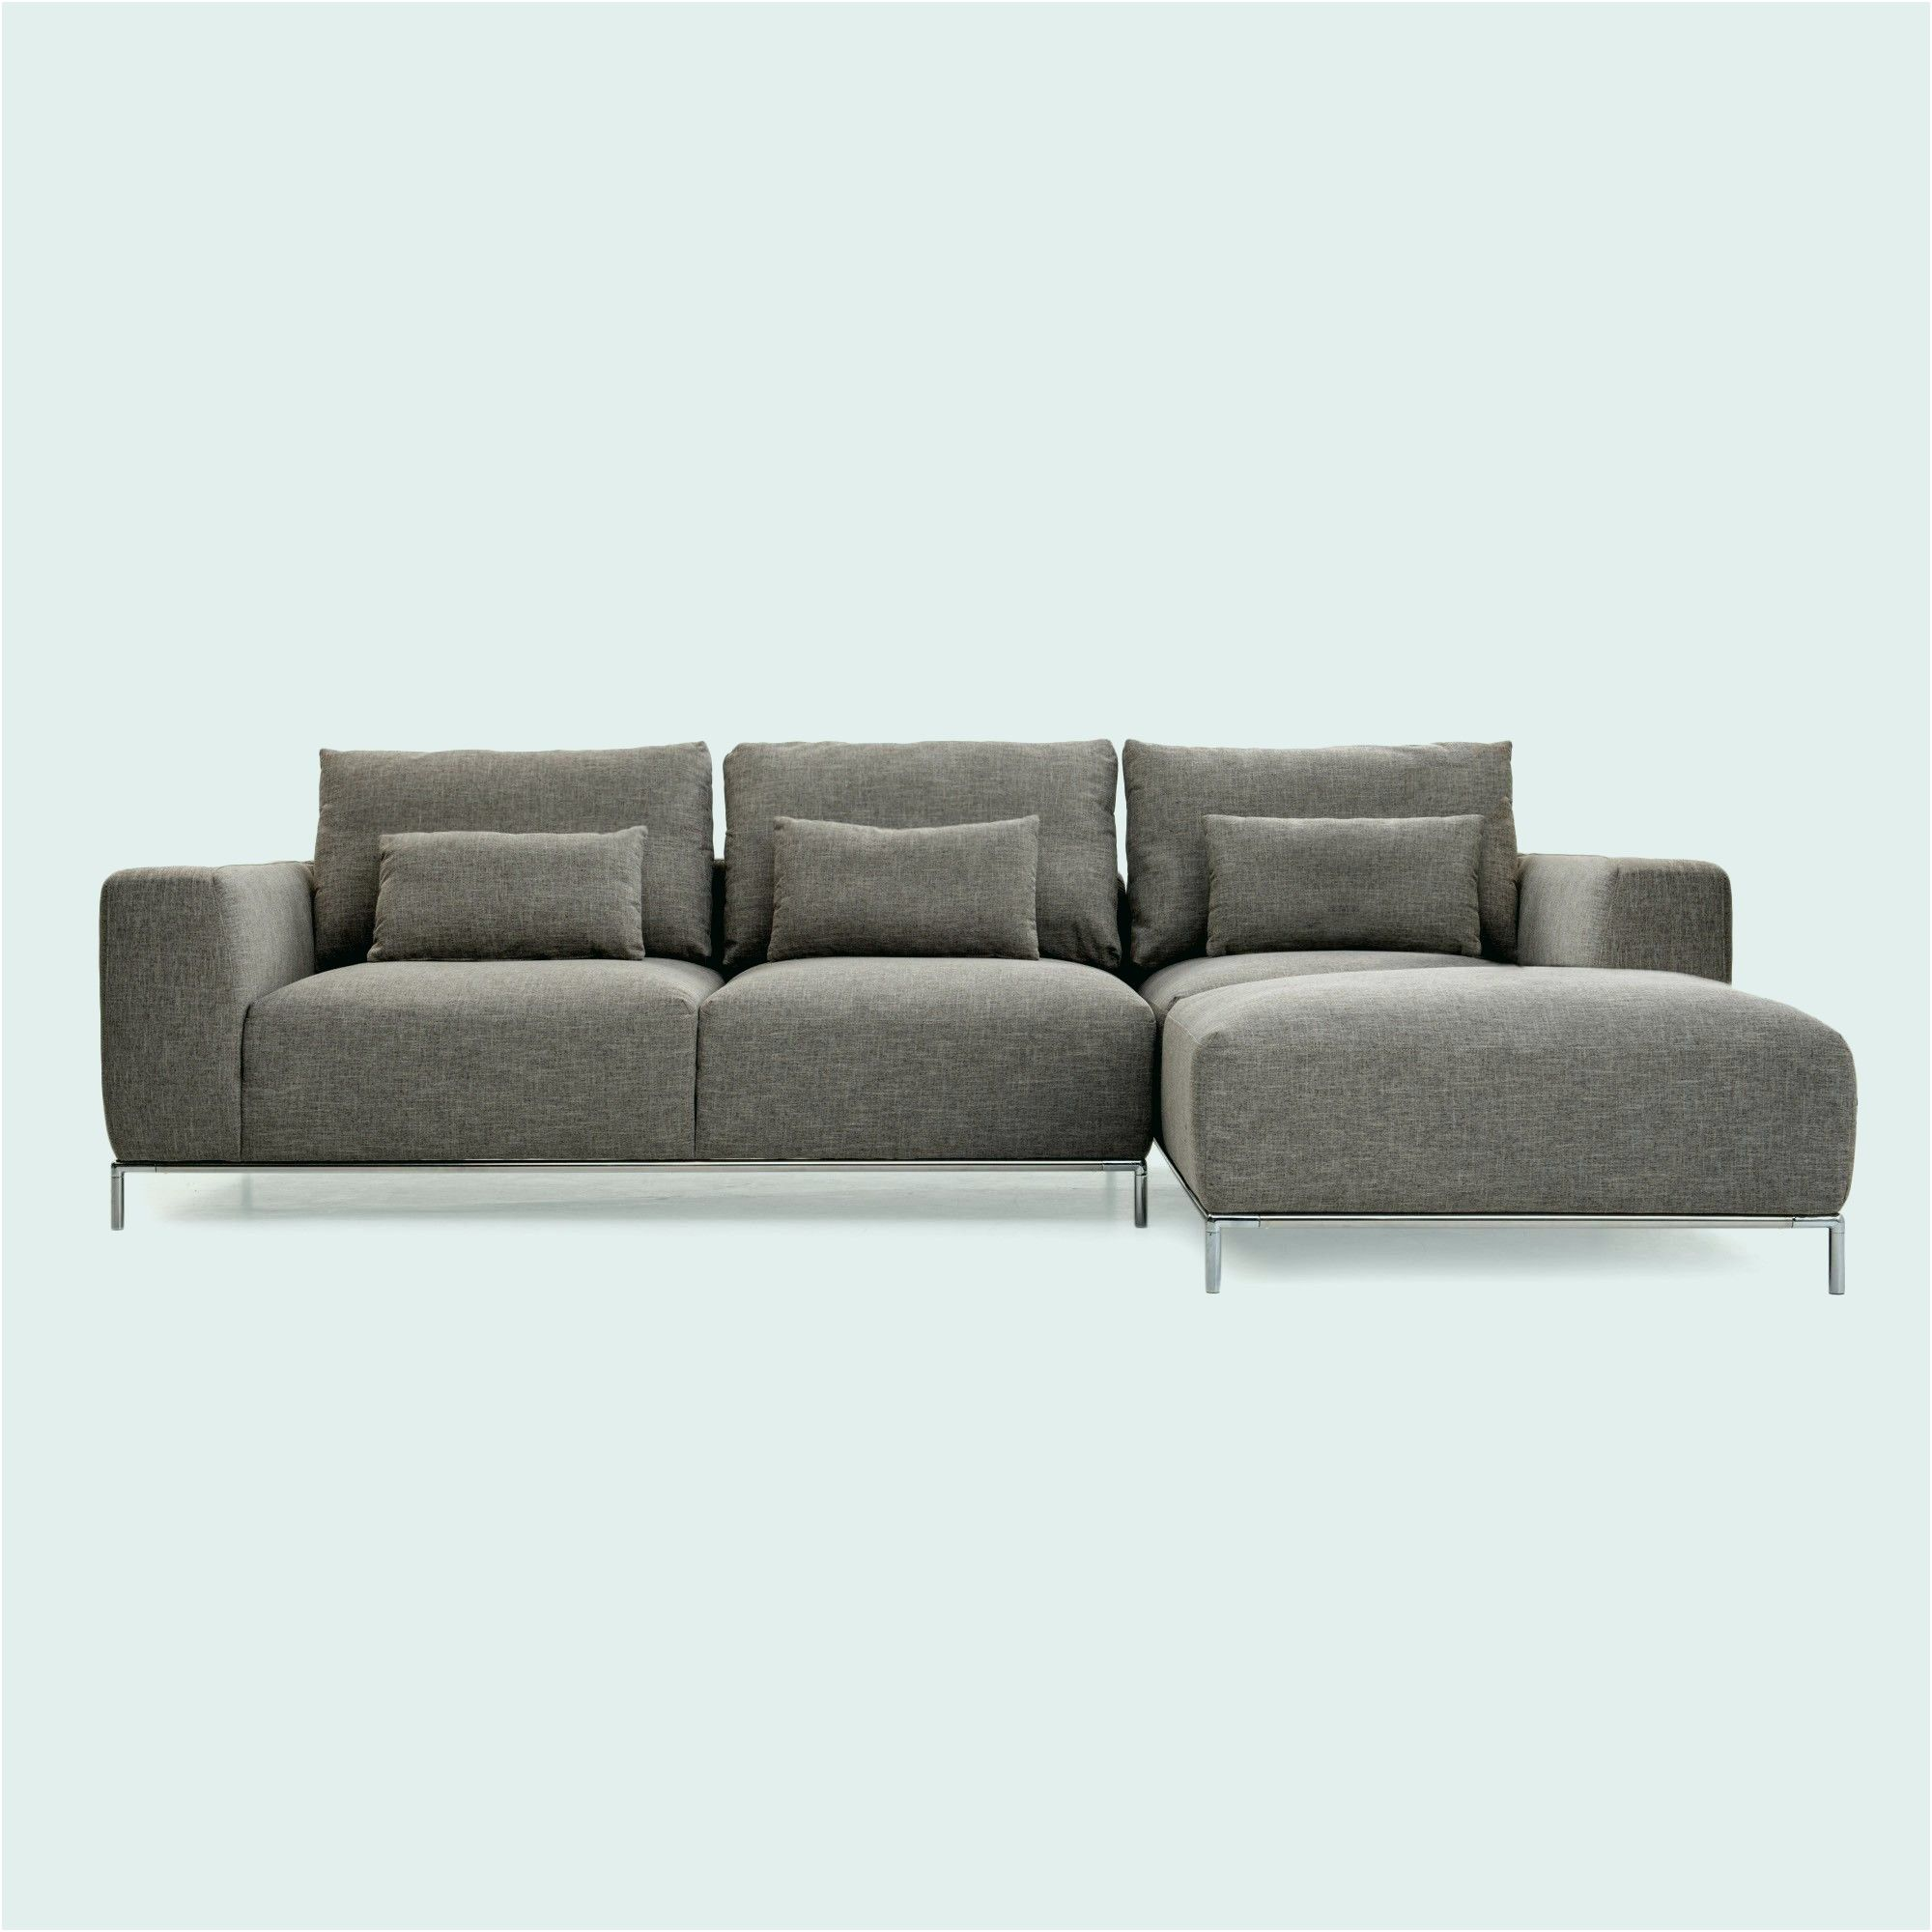 Sauber Alcantara Couch Couch Möbel Sofa Couch